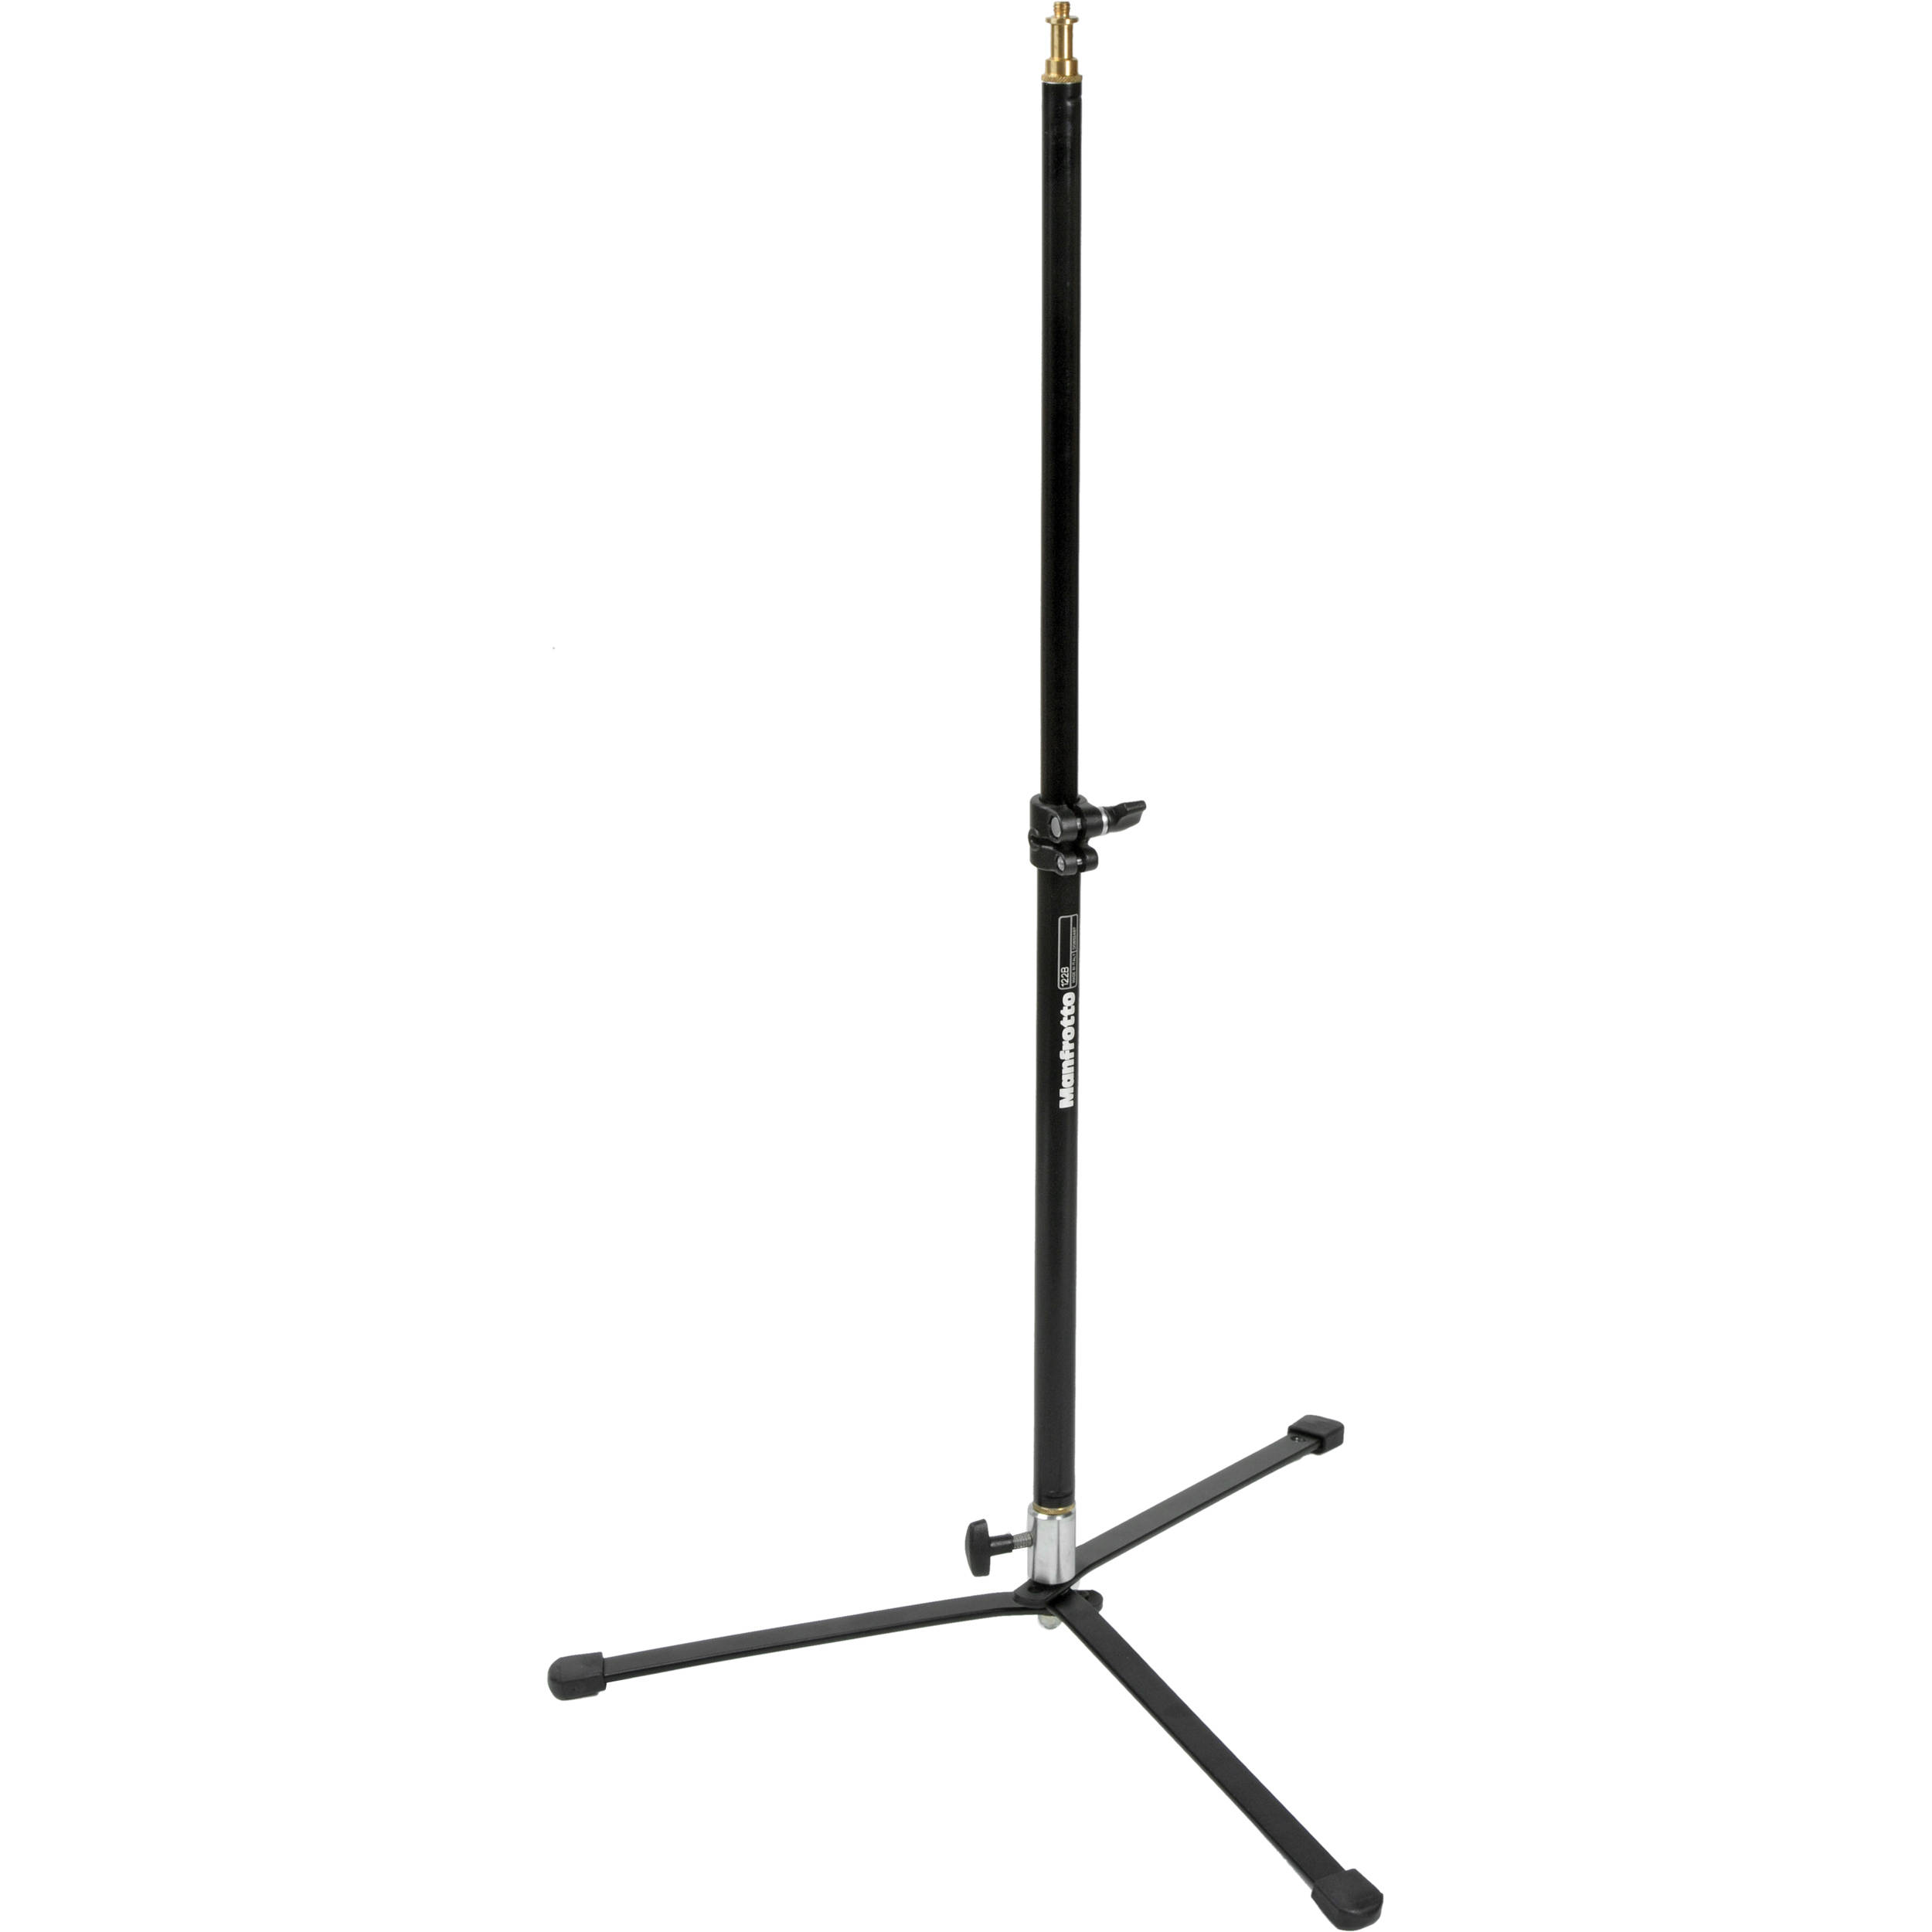 """Light Pole Pedestal: Manfrotto Backlight Stand With Pole (Black, 33.5"""") 012B B&H"""